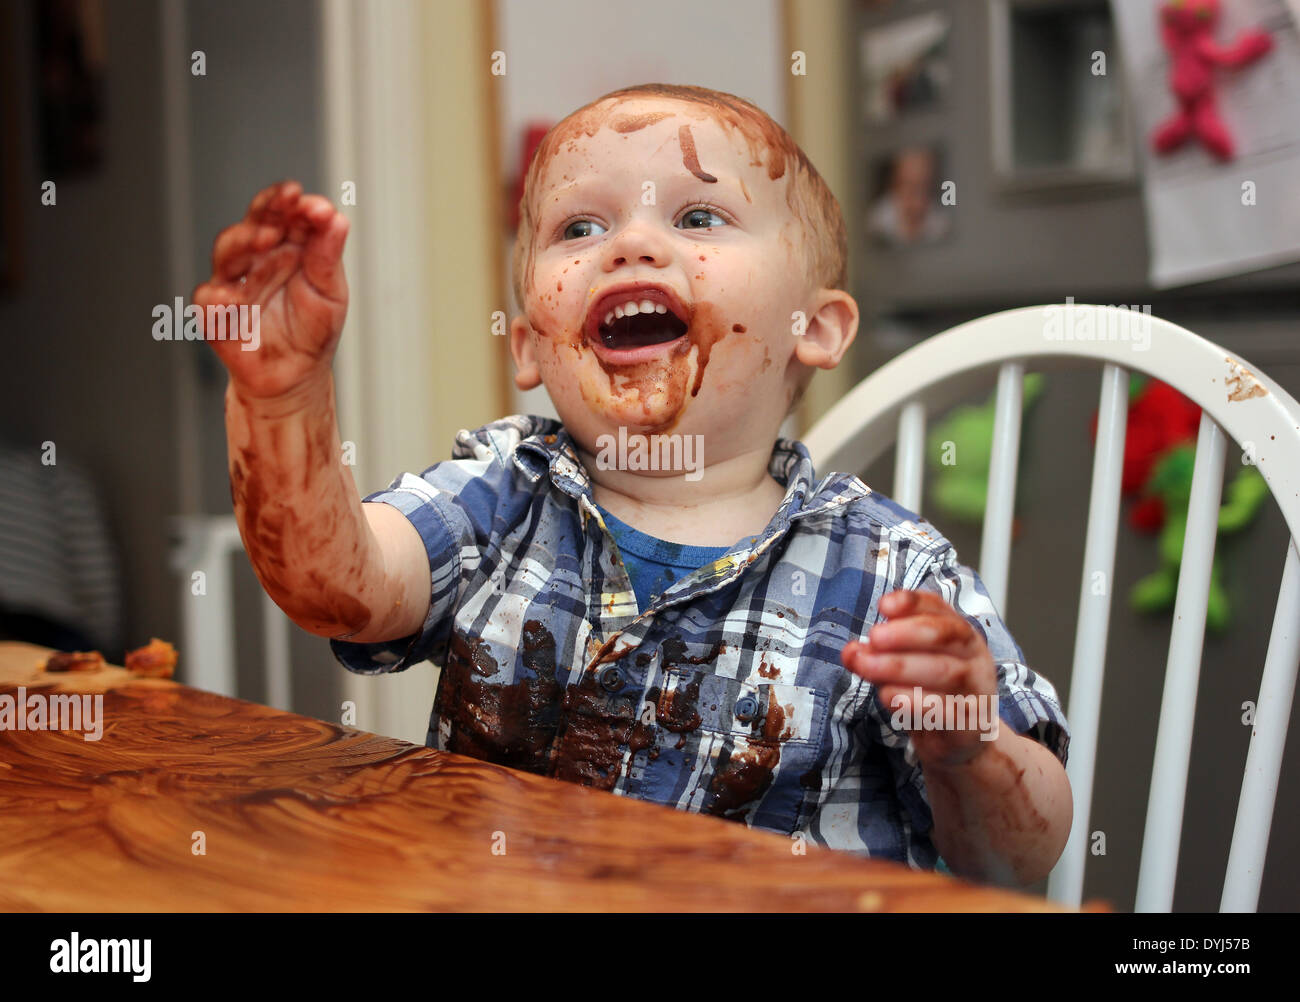 Baby covered in chocolate,illustrative editorial', bar, biscuit, break, brown, candy, caramel, chocolate, chocolate-covered, coc - Stock Image